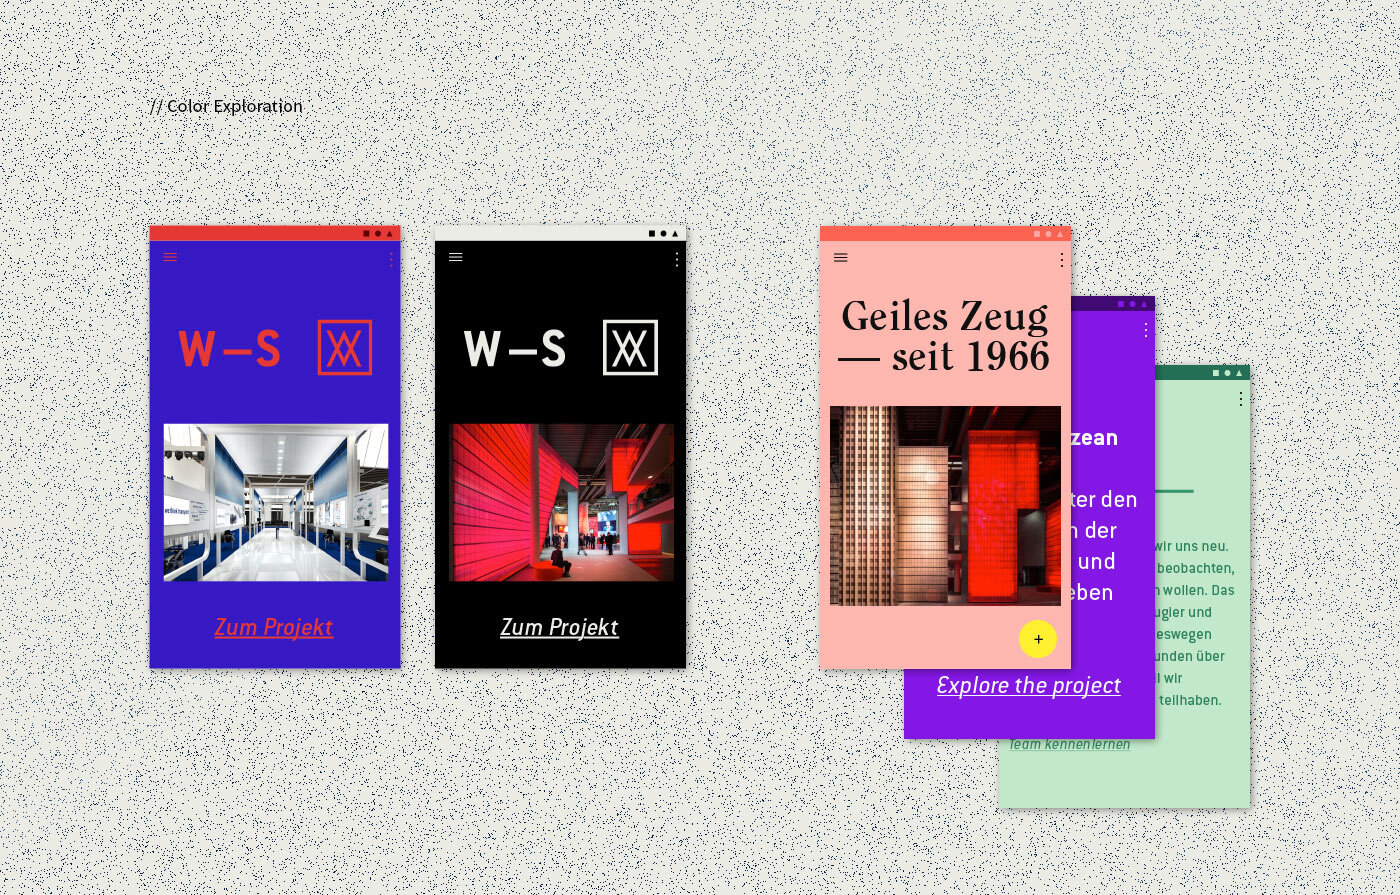 ONOGRIT is a creative consultancy and design studio specialized in the field of User Experience Design (UX), Visual Design and Brand Building based in Cologne / Köln. ONOGRIT ist ein Design Studio spezialisiert auf visuelle Kommunikation, User Experience Design (UX), Branding und Markenentwicklung mit Sitz in Köln.